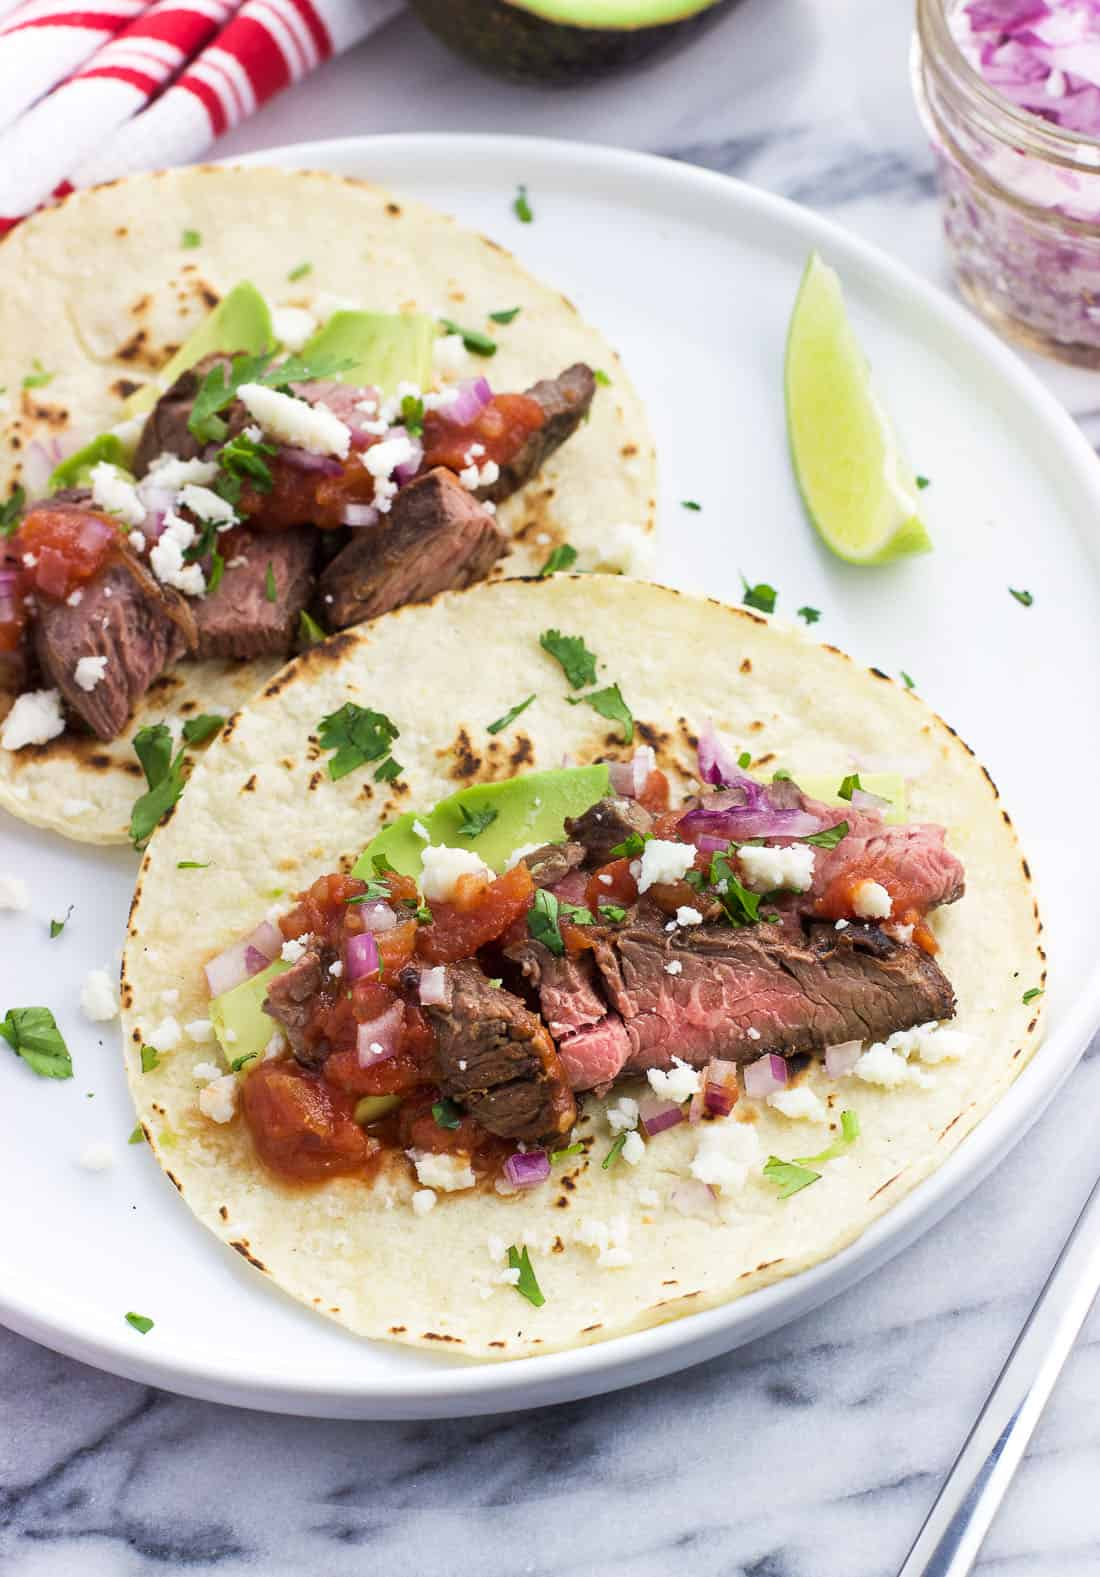 Two open-face carne asada tacos on a plate.